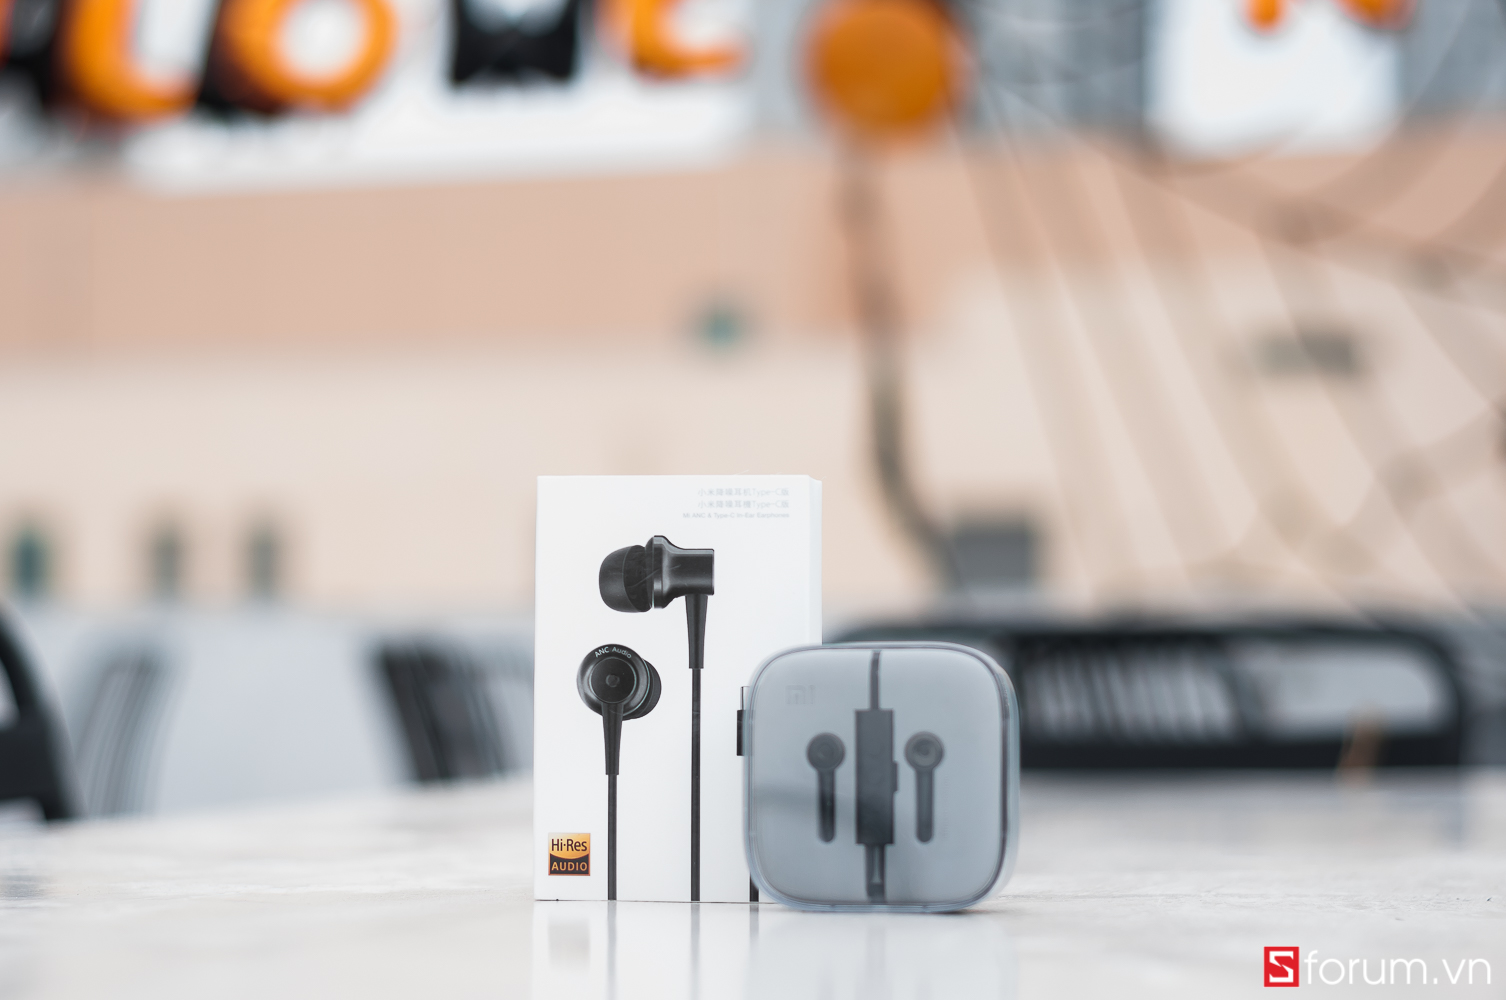 Sforum - Latest technology information page DSC_8566-1 Review Xiaomi Mi ANC: The best active noise canceling headset at 590,000 VND